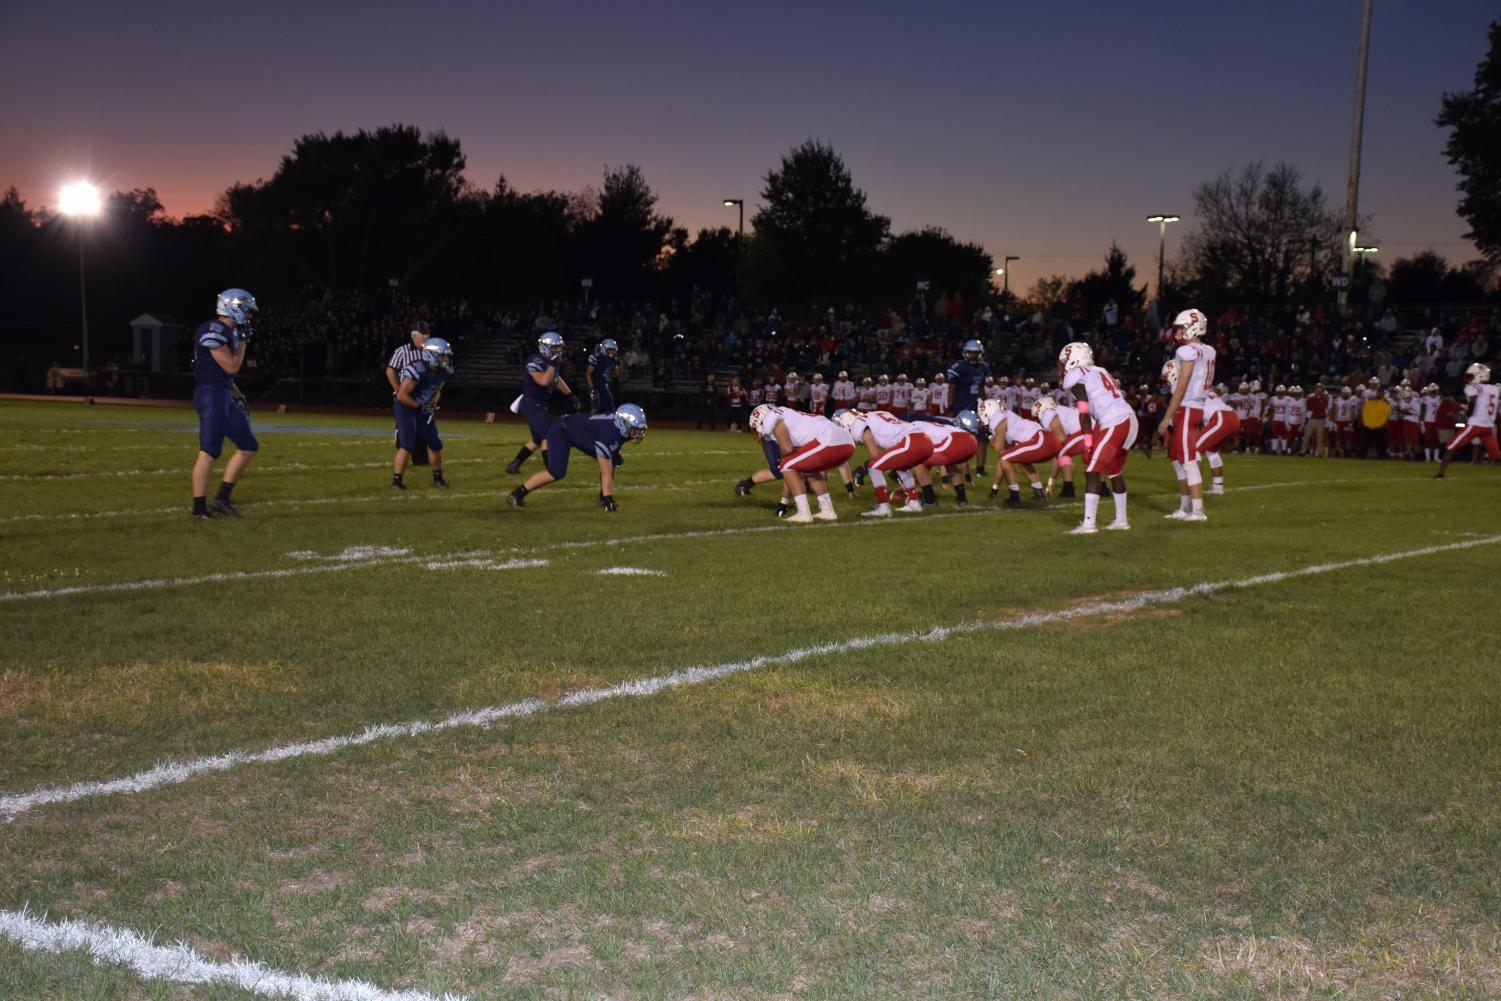 The Knights and Indians have become a big rivalry in local high school sports, with only a 15-minute drive away from each other.